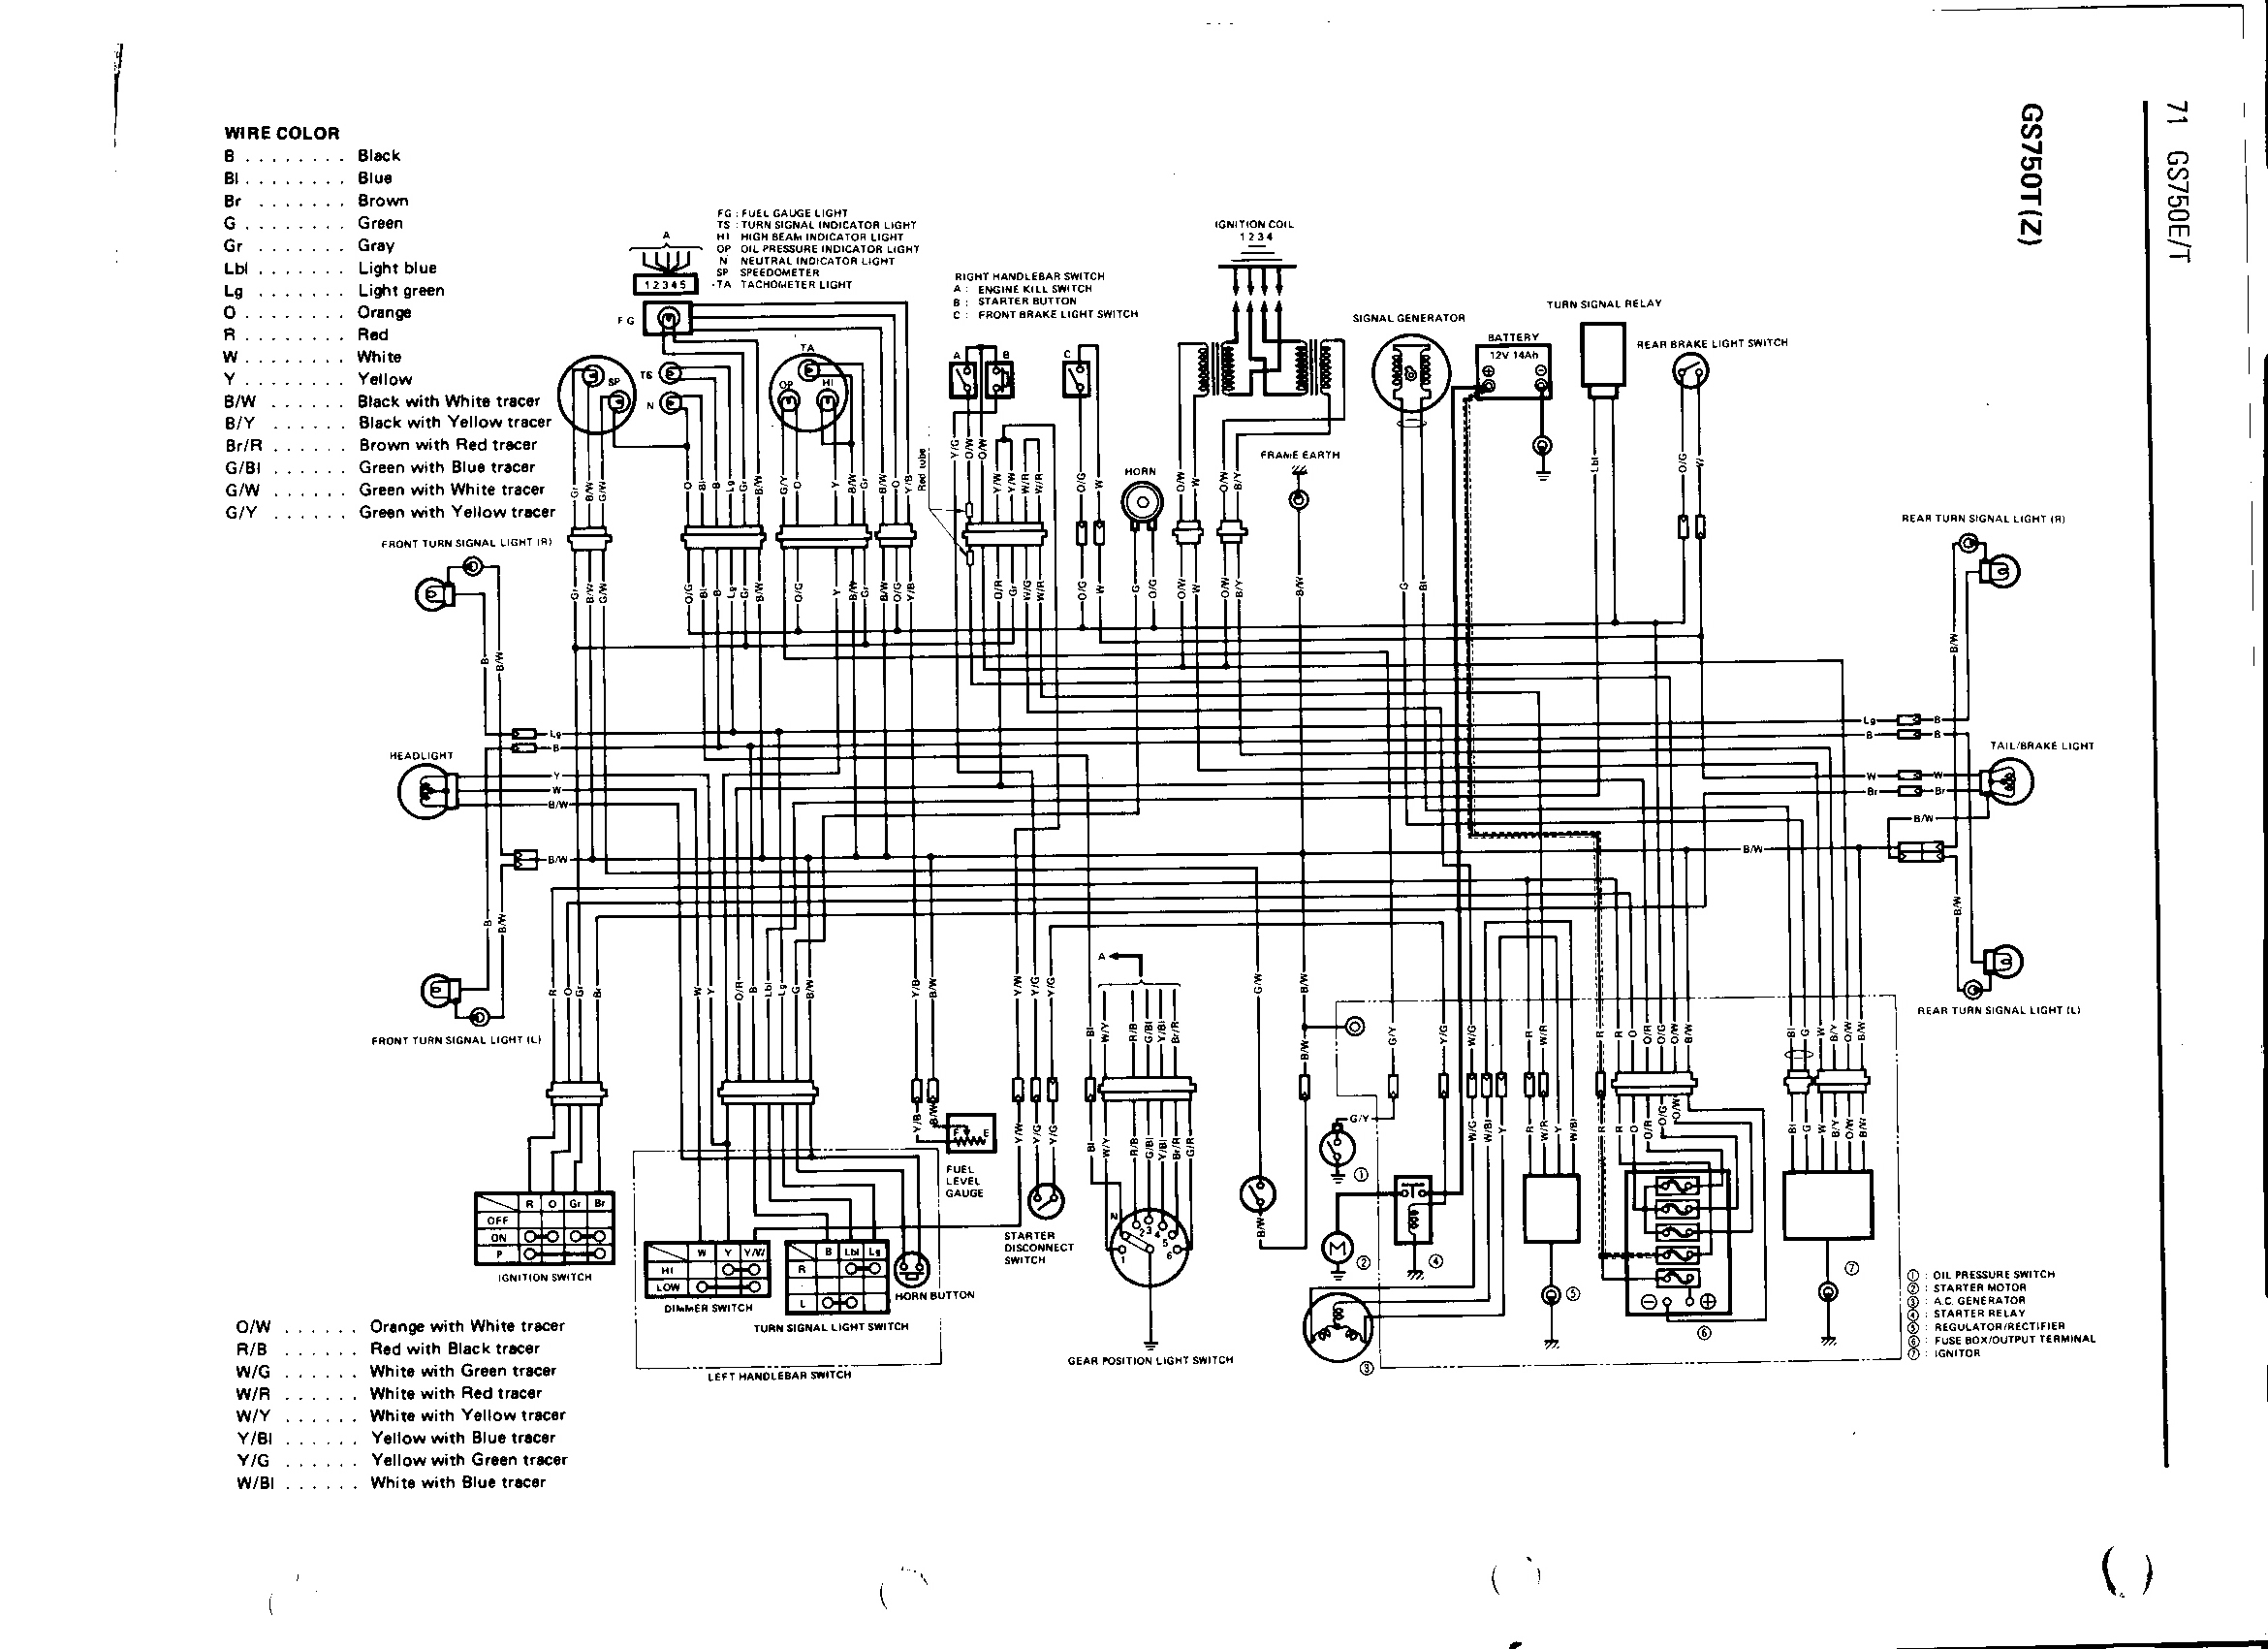 Us Jetting Wiring Diagrams : 26 Wiring Diagram Images